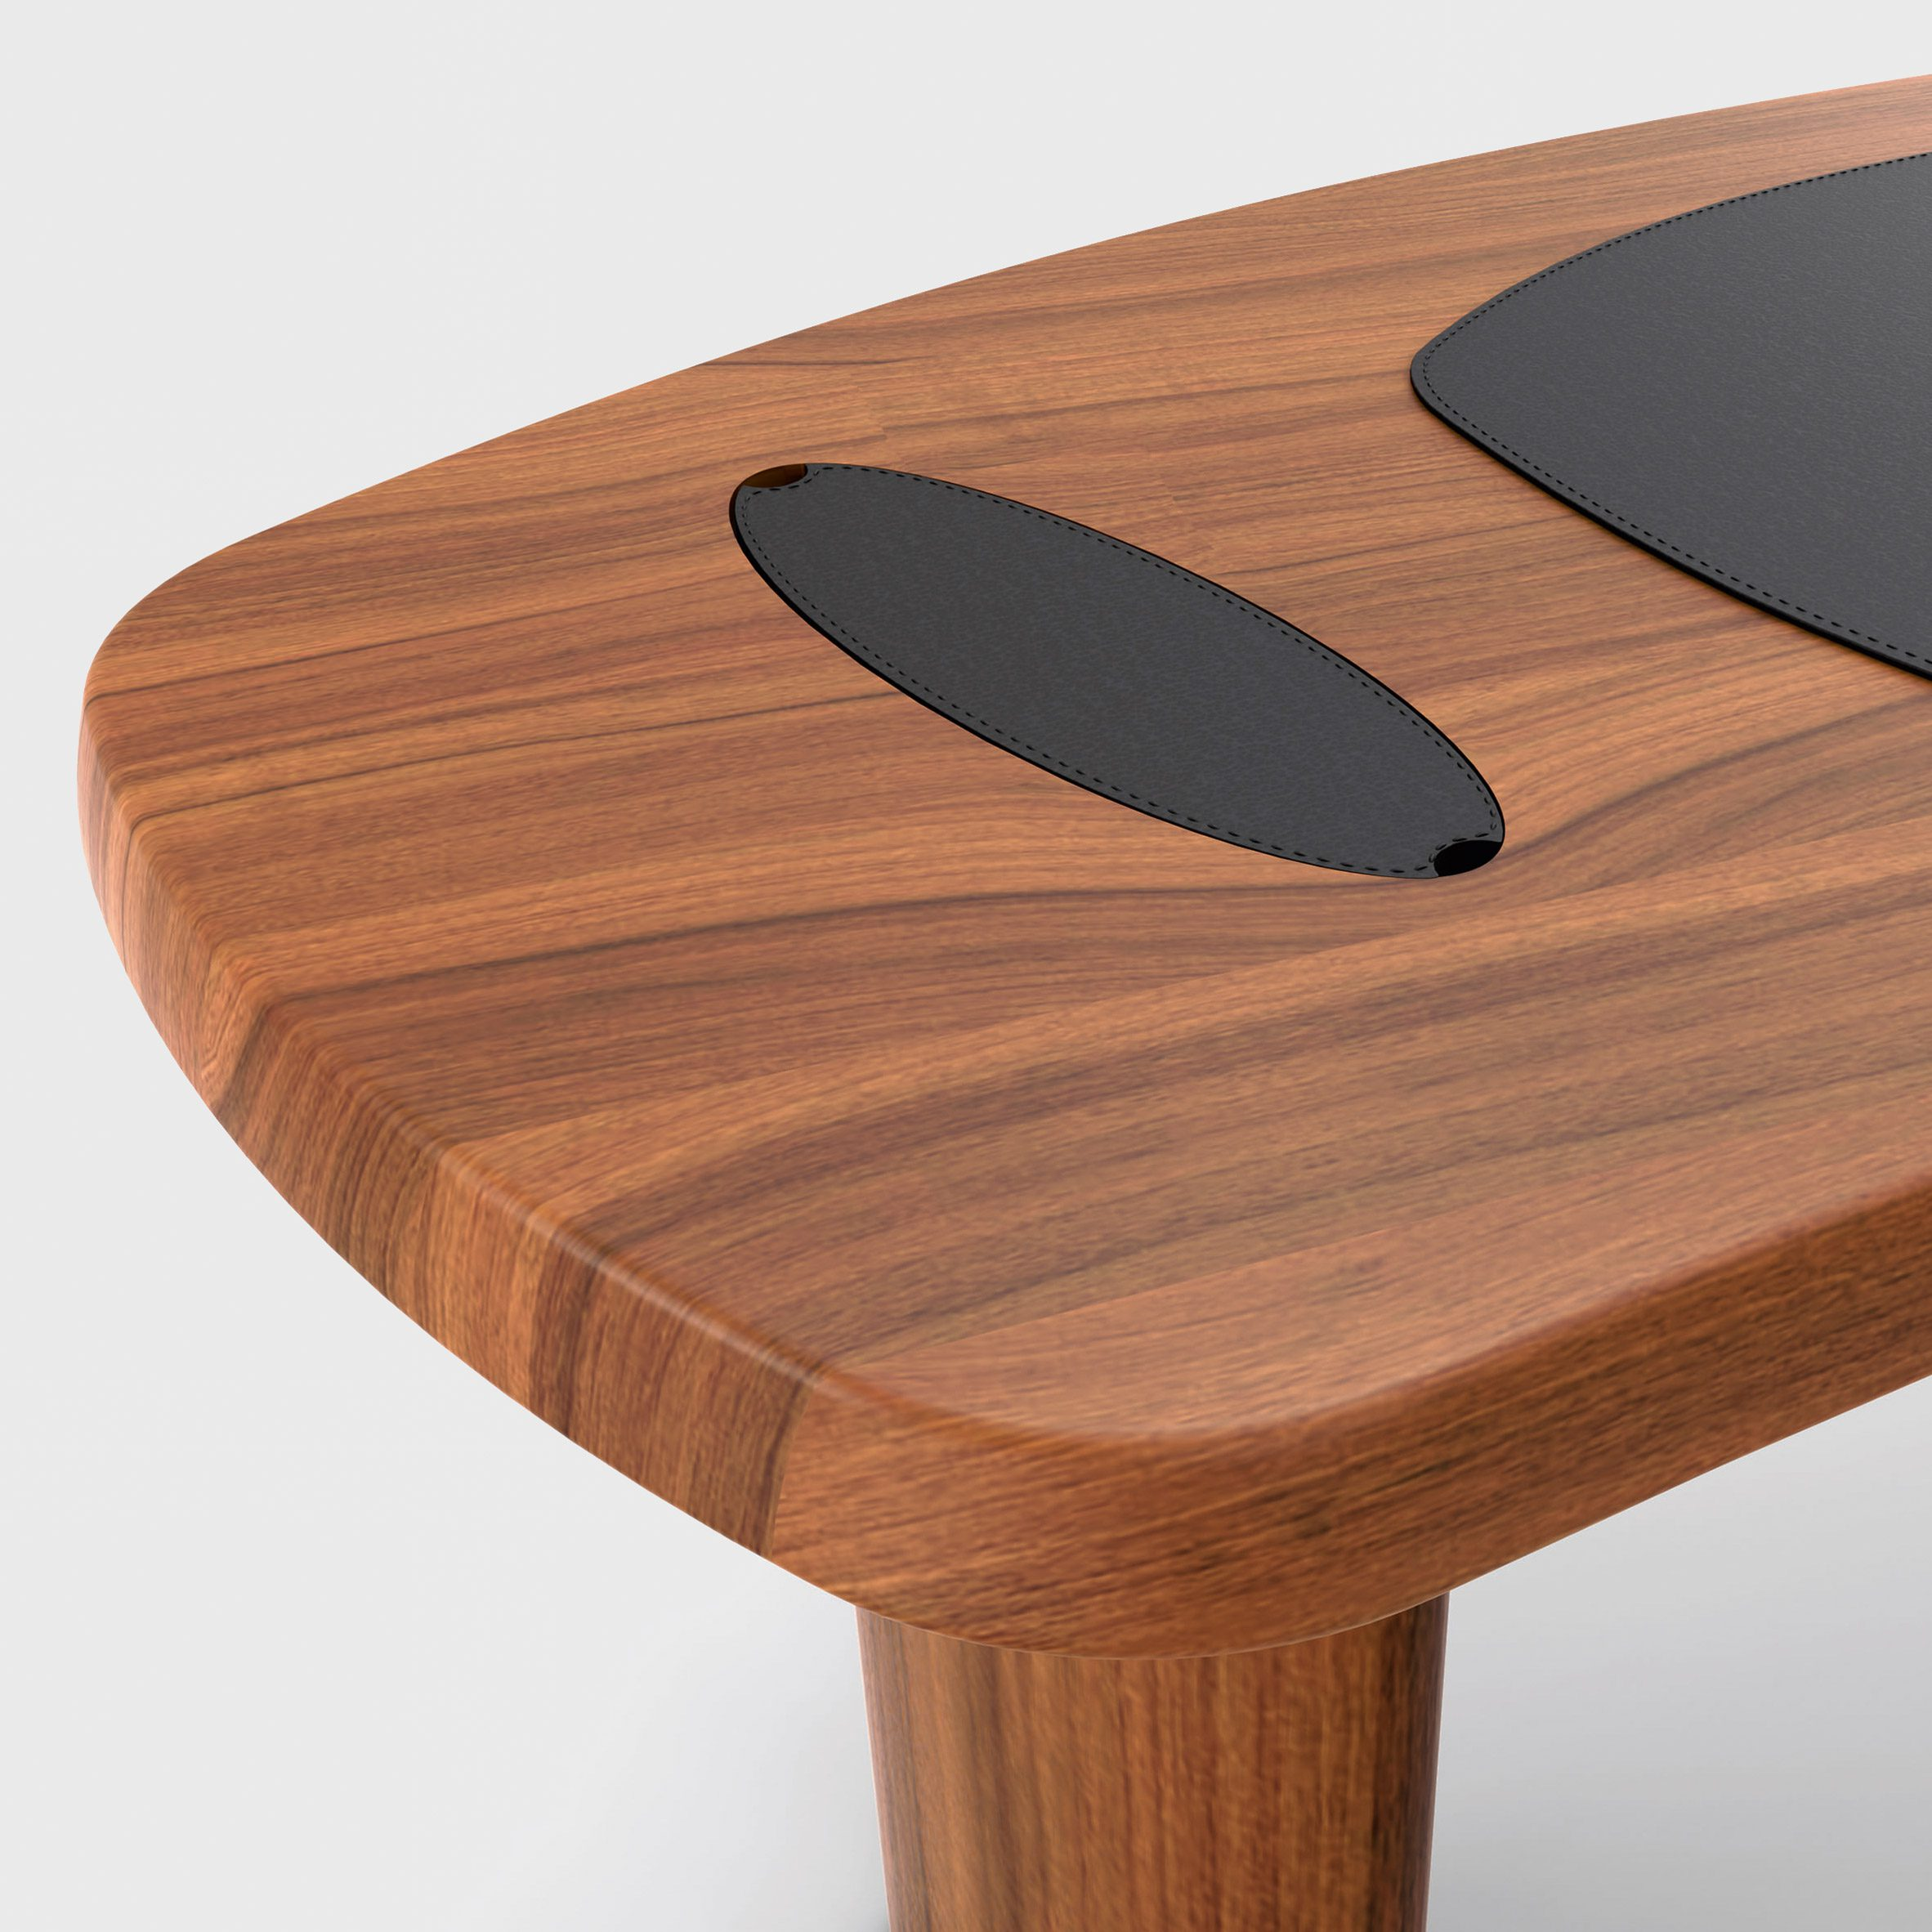 The desk made from leather and wood